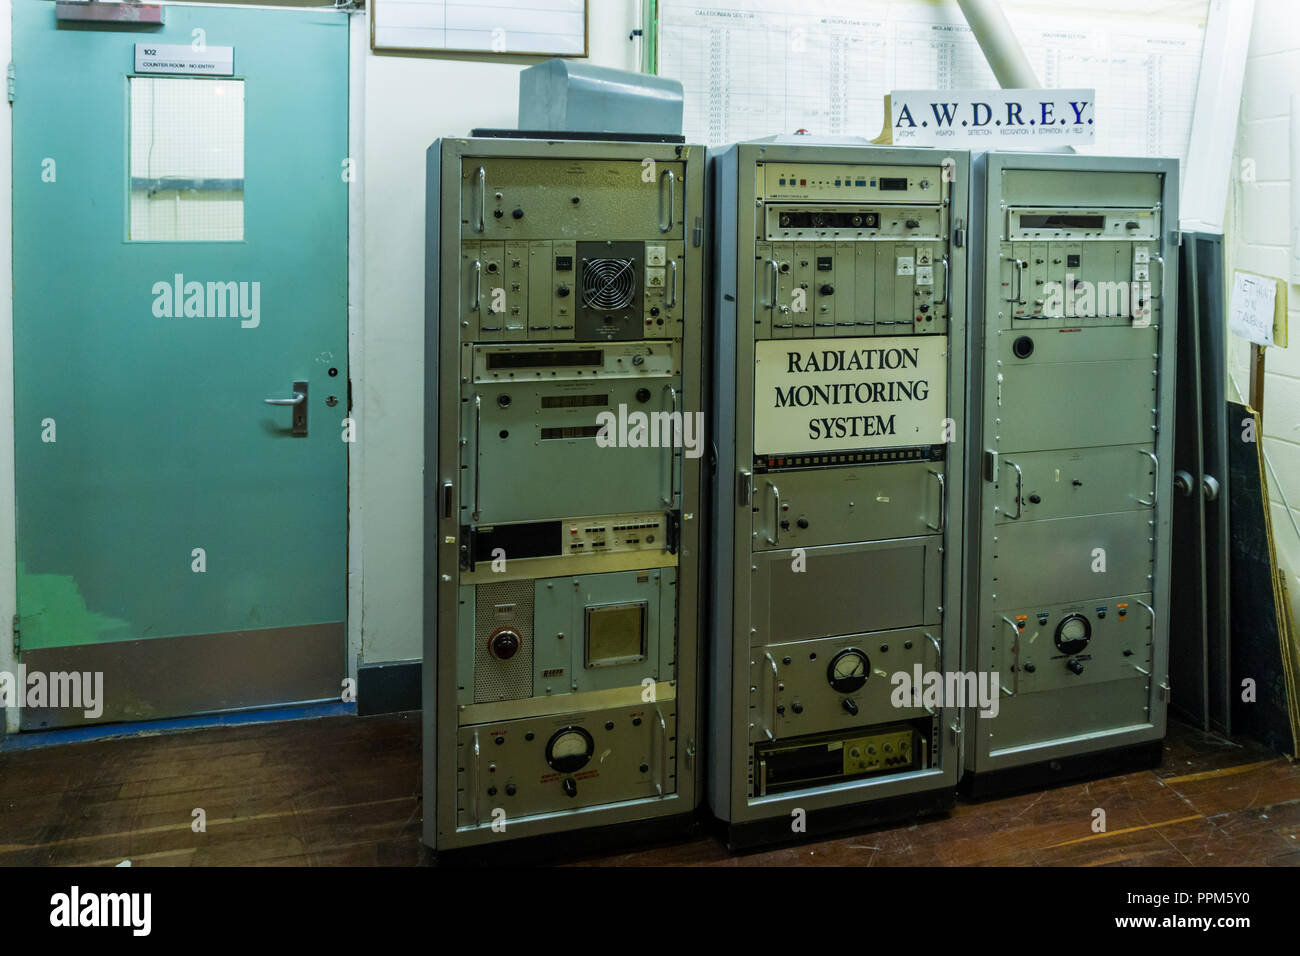 A.W.D.R.E.Y., Atomic Weapons Detection Recognition and Estimation of Yield equipment in a cold war nuclear bunker. - Stock Image